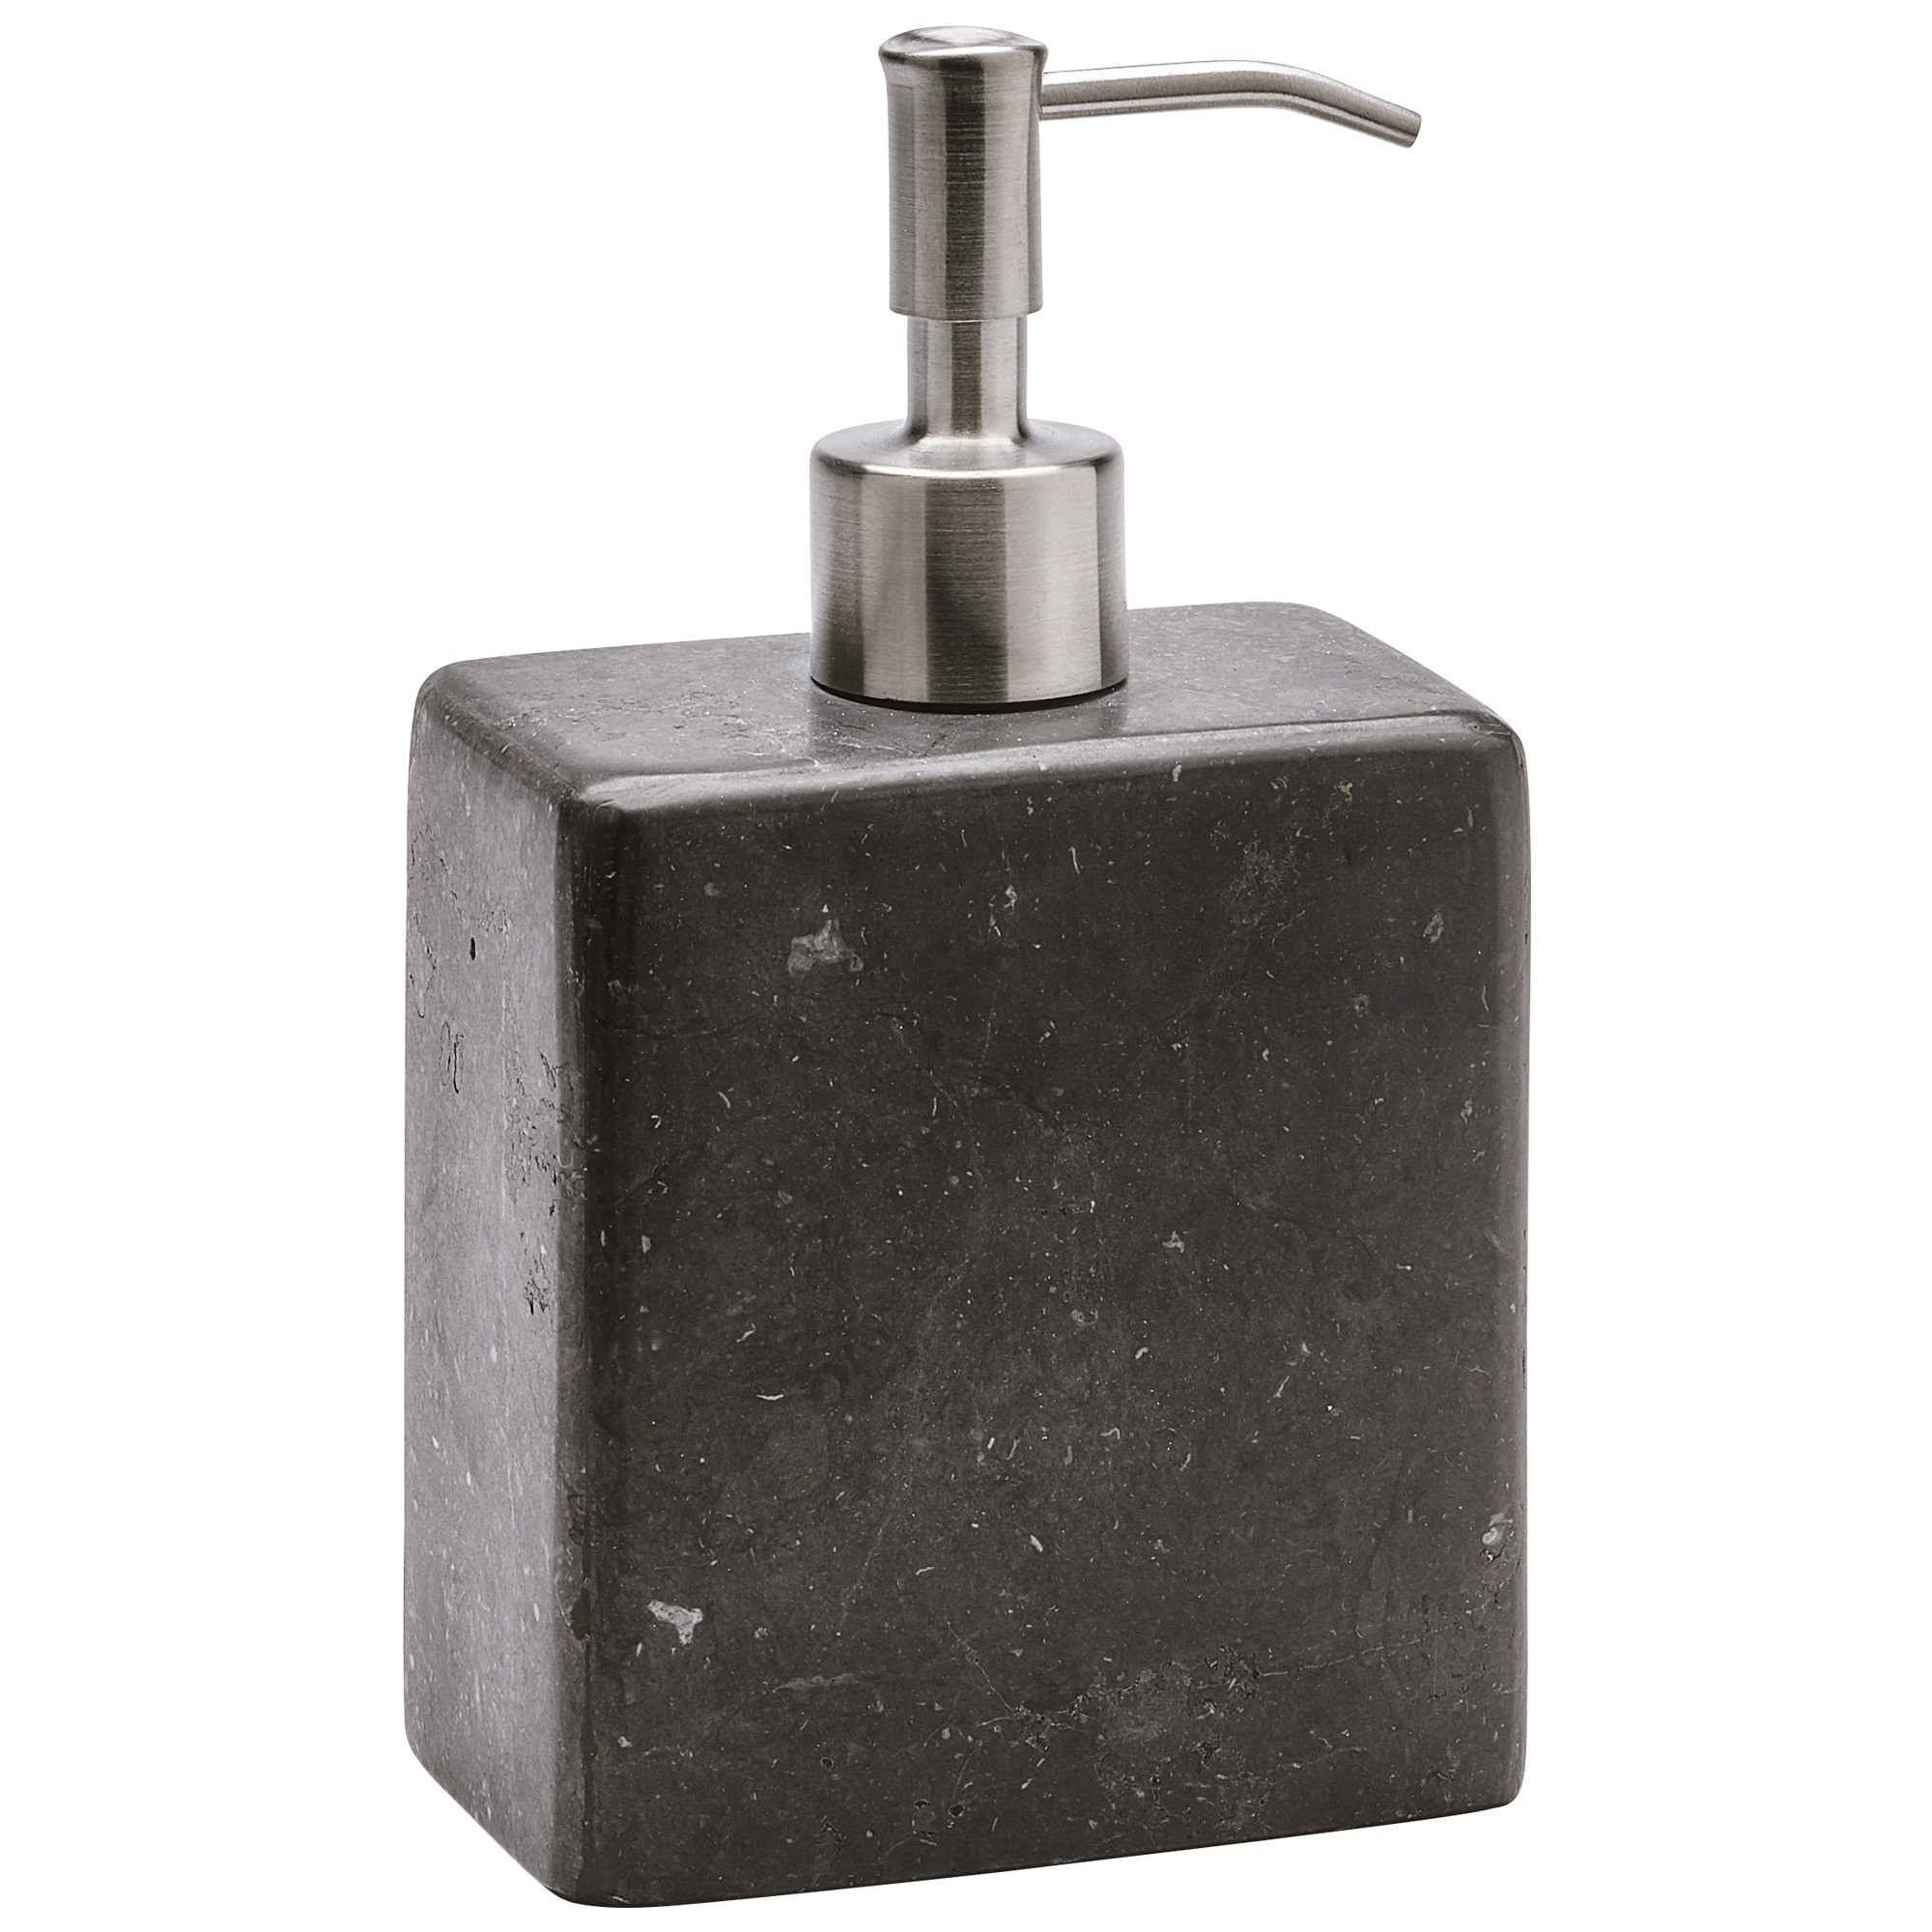 Aquanova Hammam Natural Stone Soap Dispenser, Medium, Dark Grey